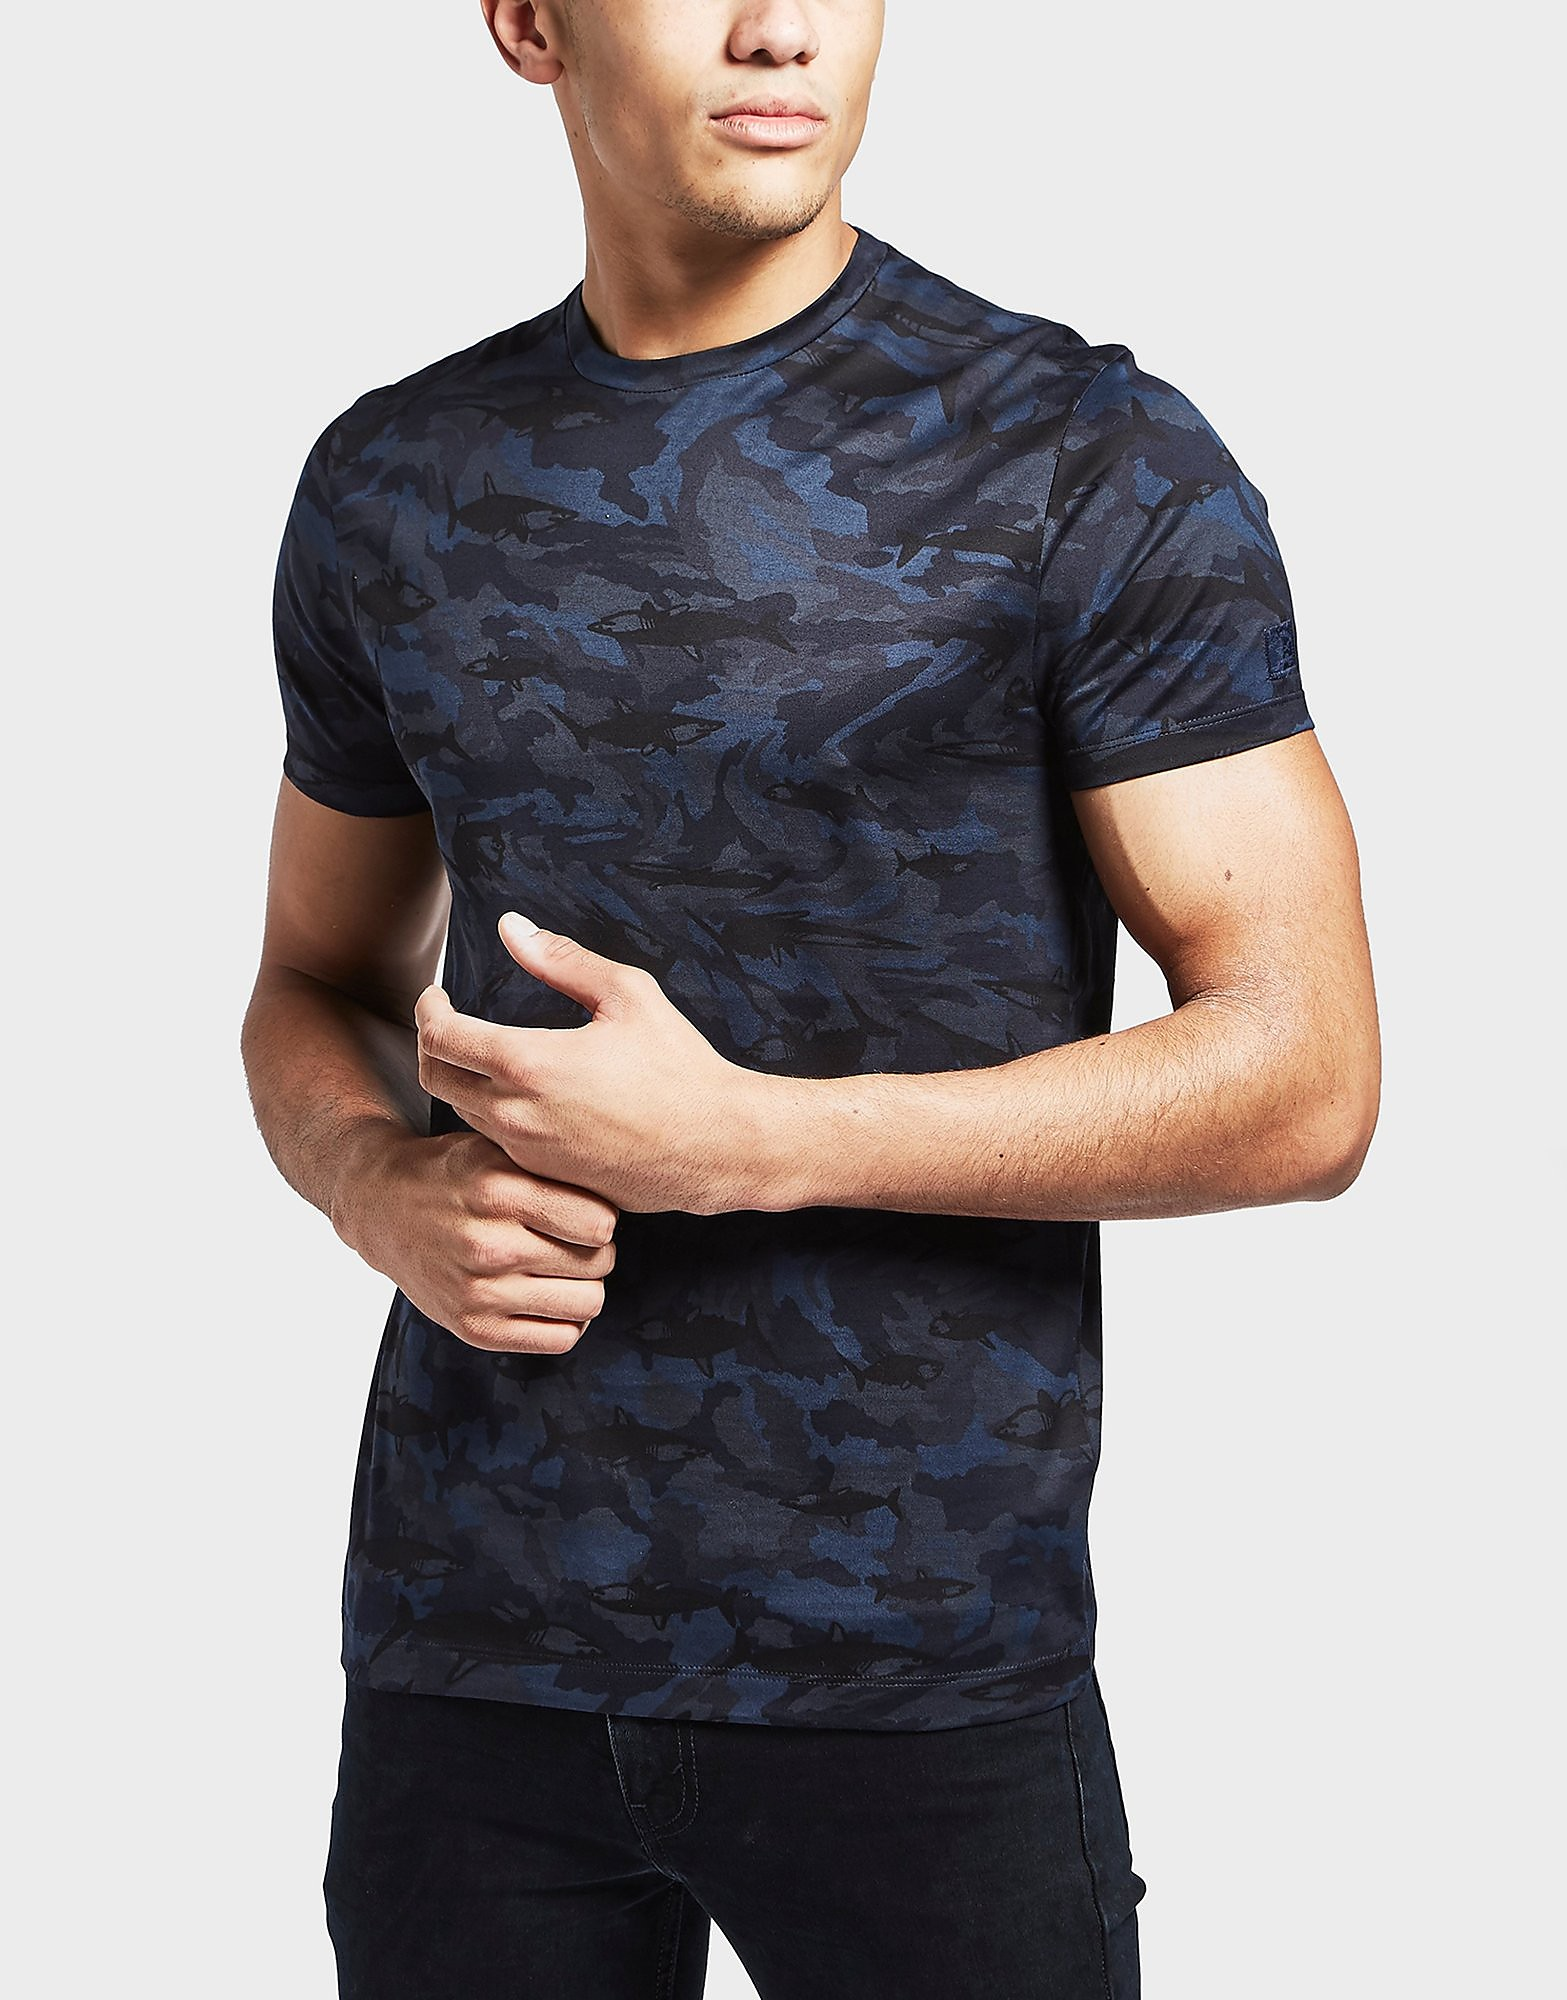 Paul and Shark Shark Camouflage Short Sleeve T-Shirt